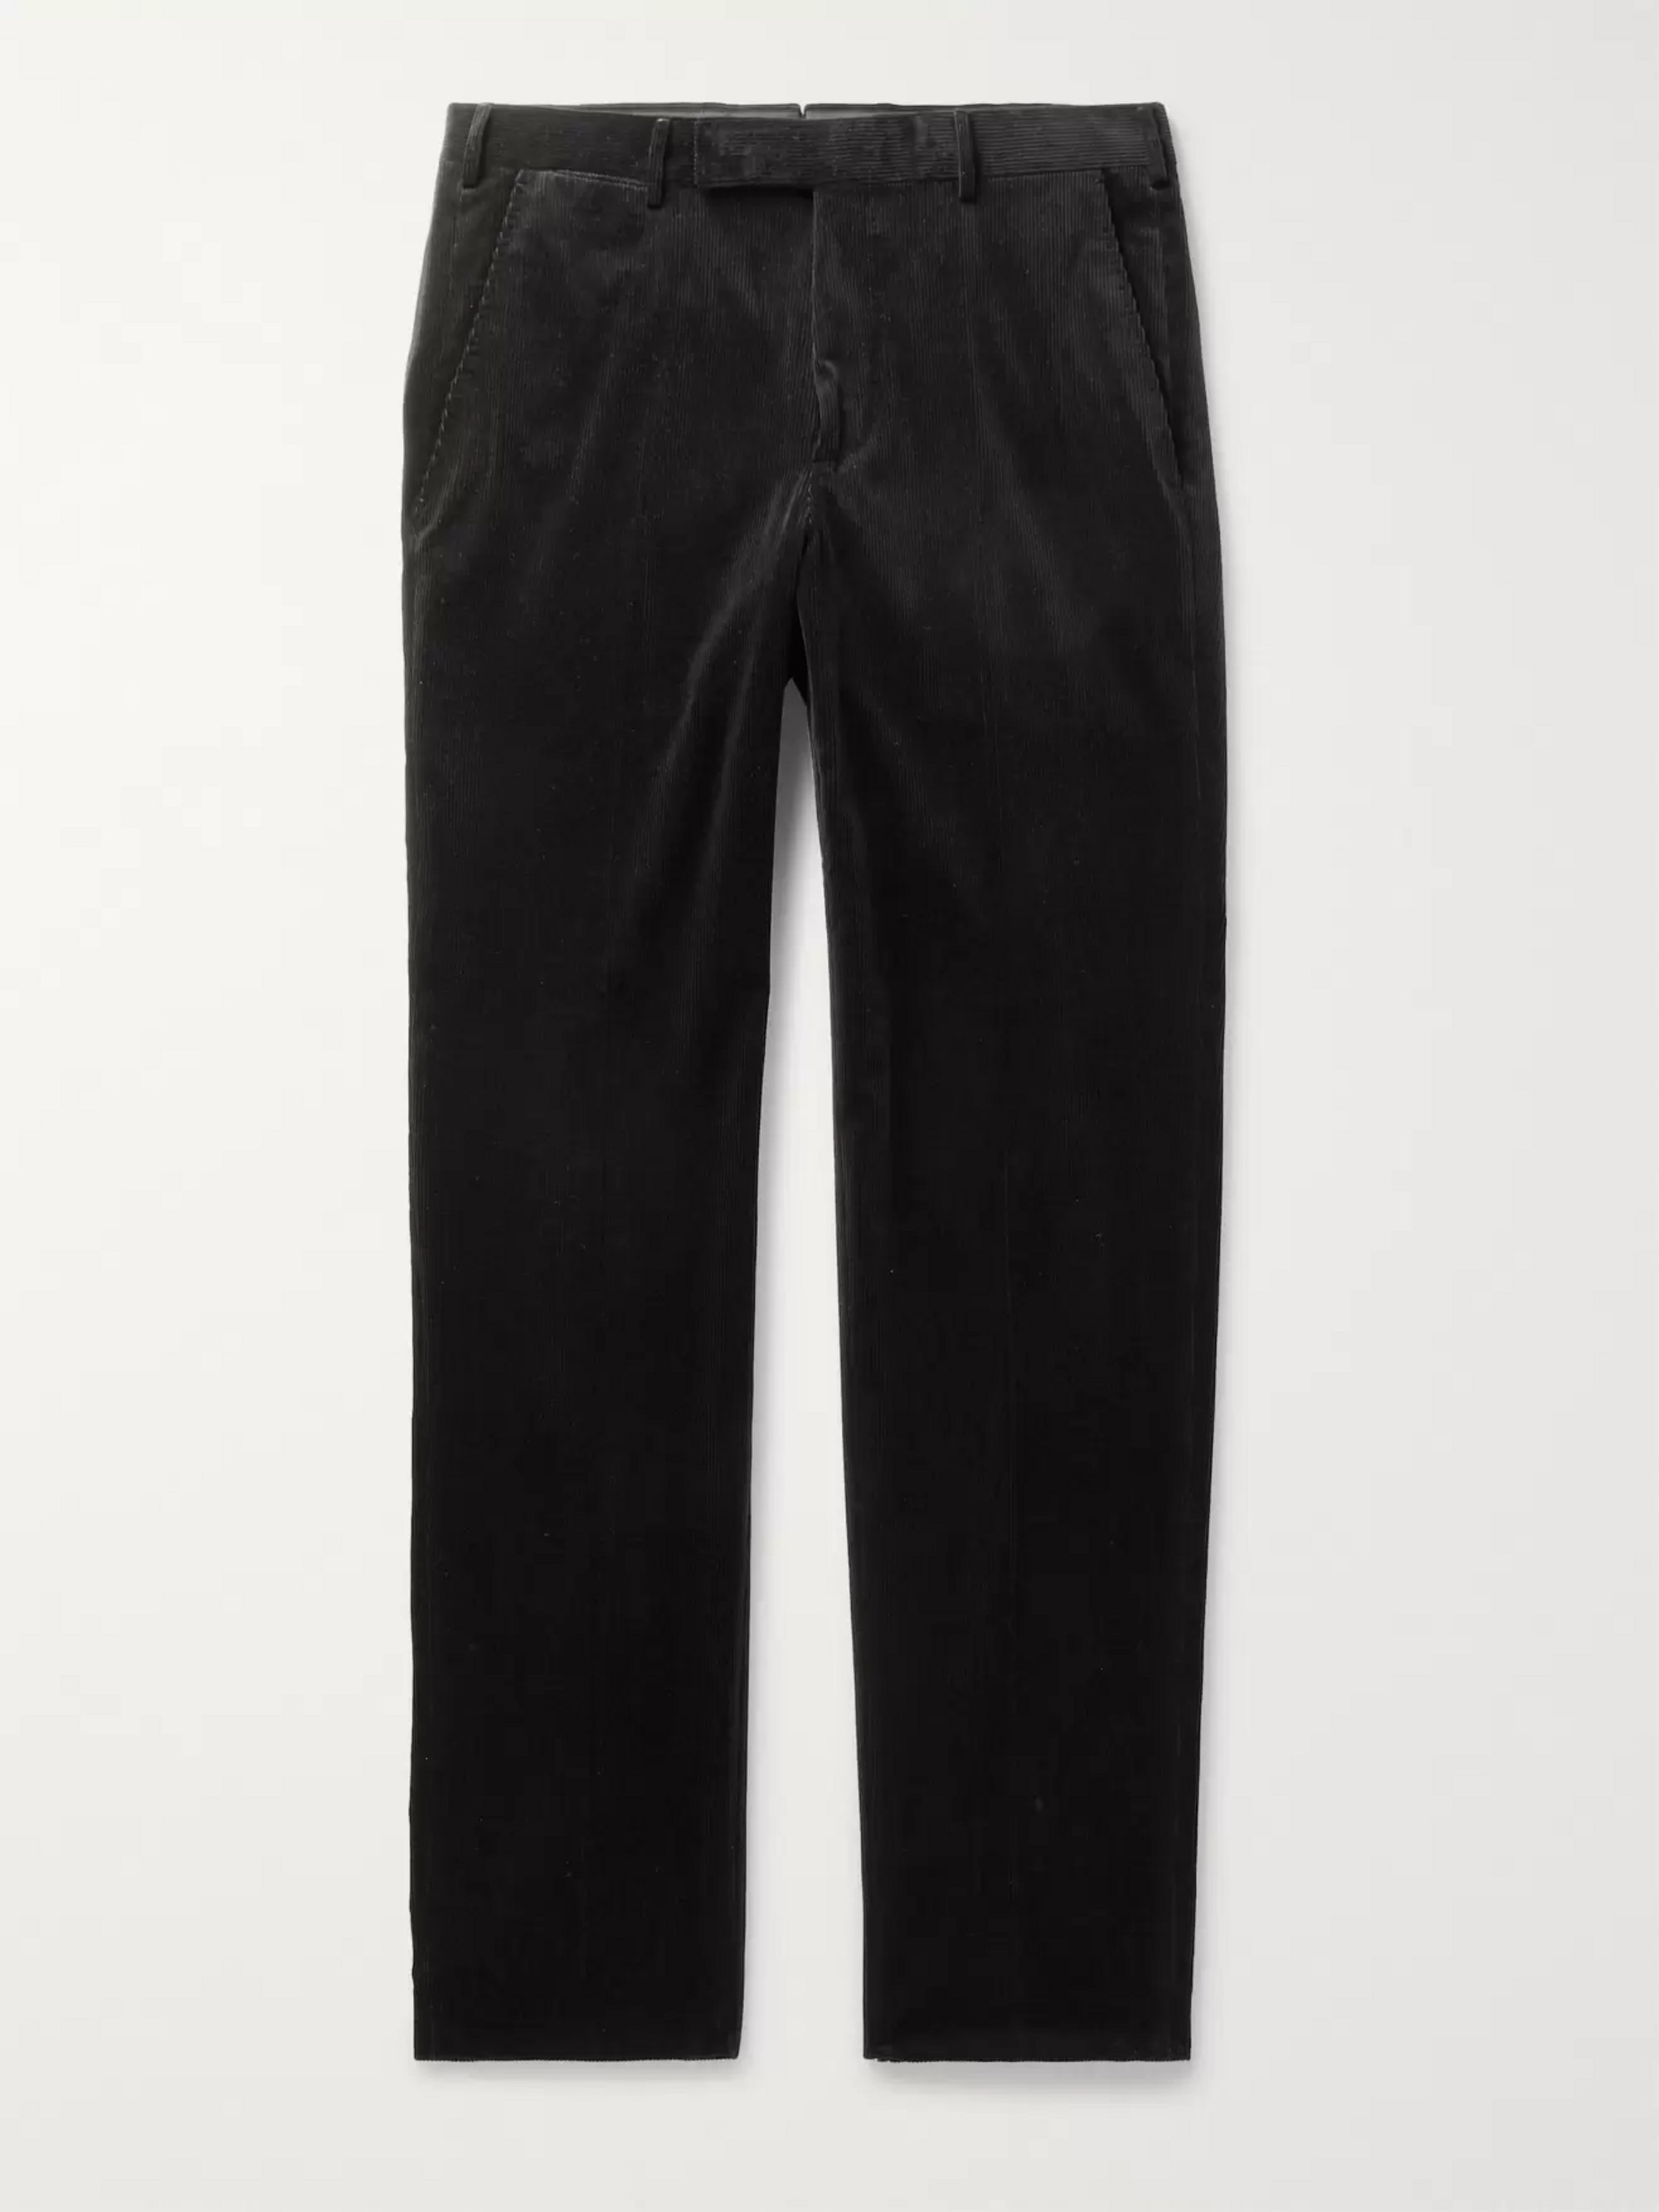 Ermenegildo Zegna Black Stretch Cotton and Cashmere-Blend Corduroy Trousers